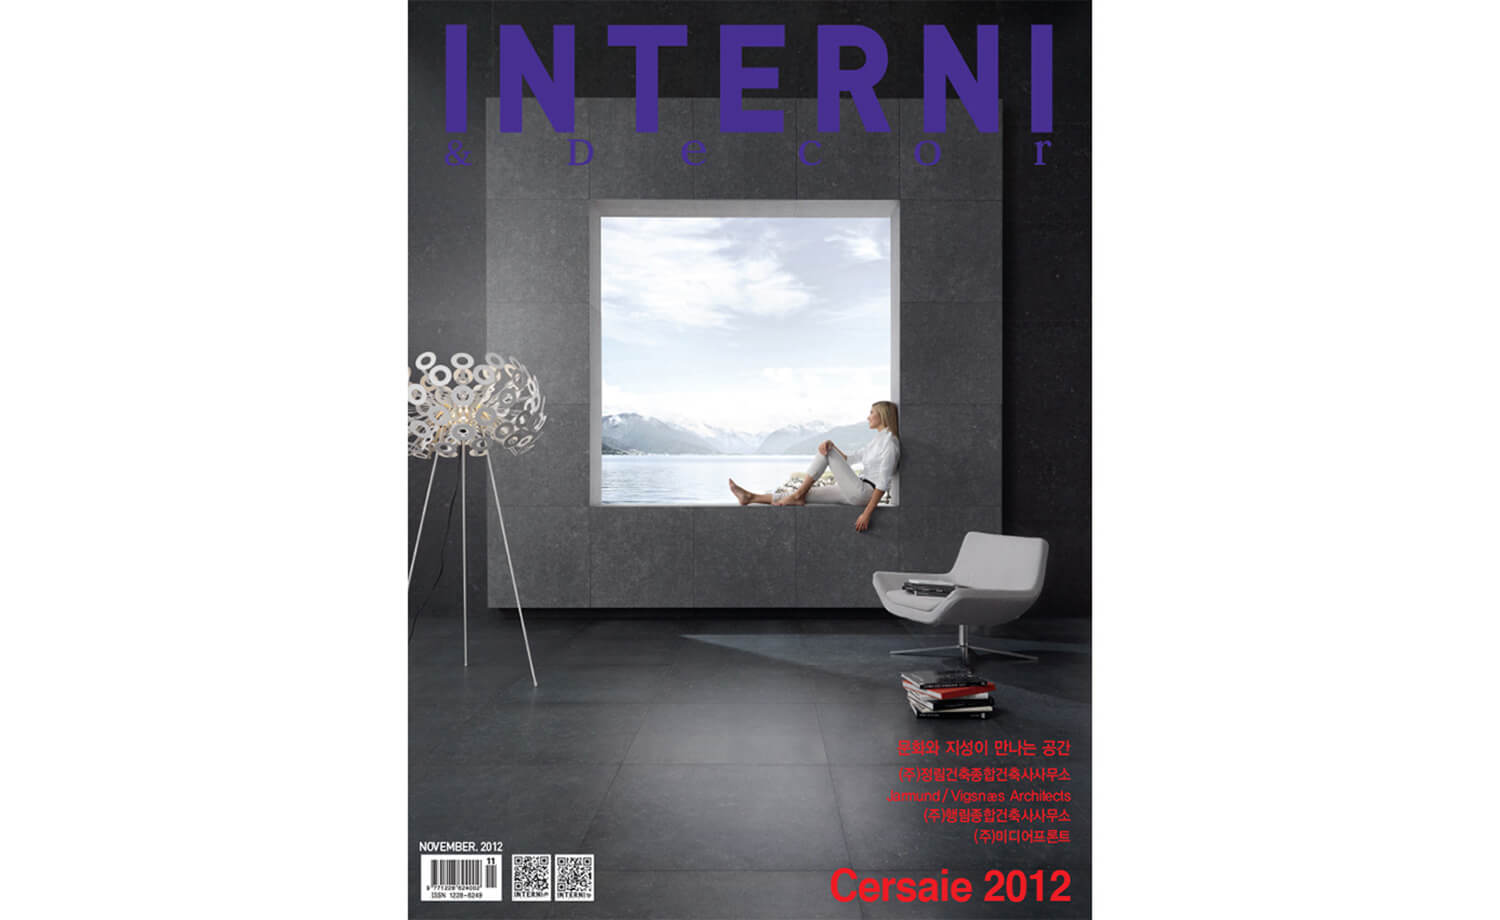 InterniDecor-OSO-01